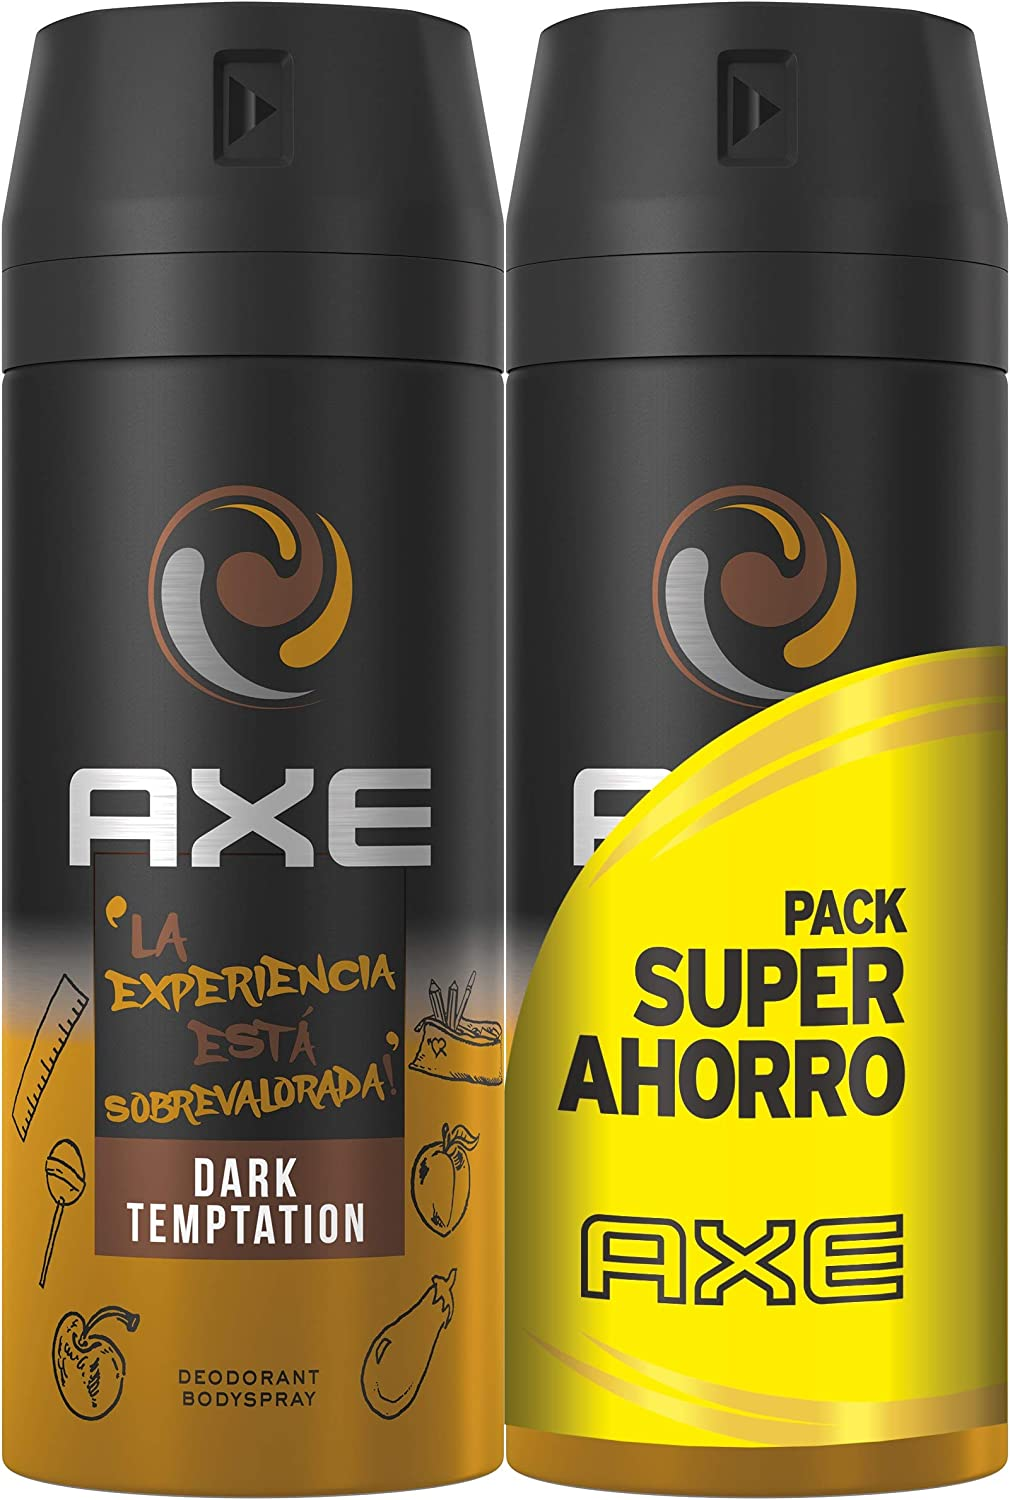 AXE Pack Ahorro Desodorante Dark Temptation 2 x 150 ml: Amazon.es ...